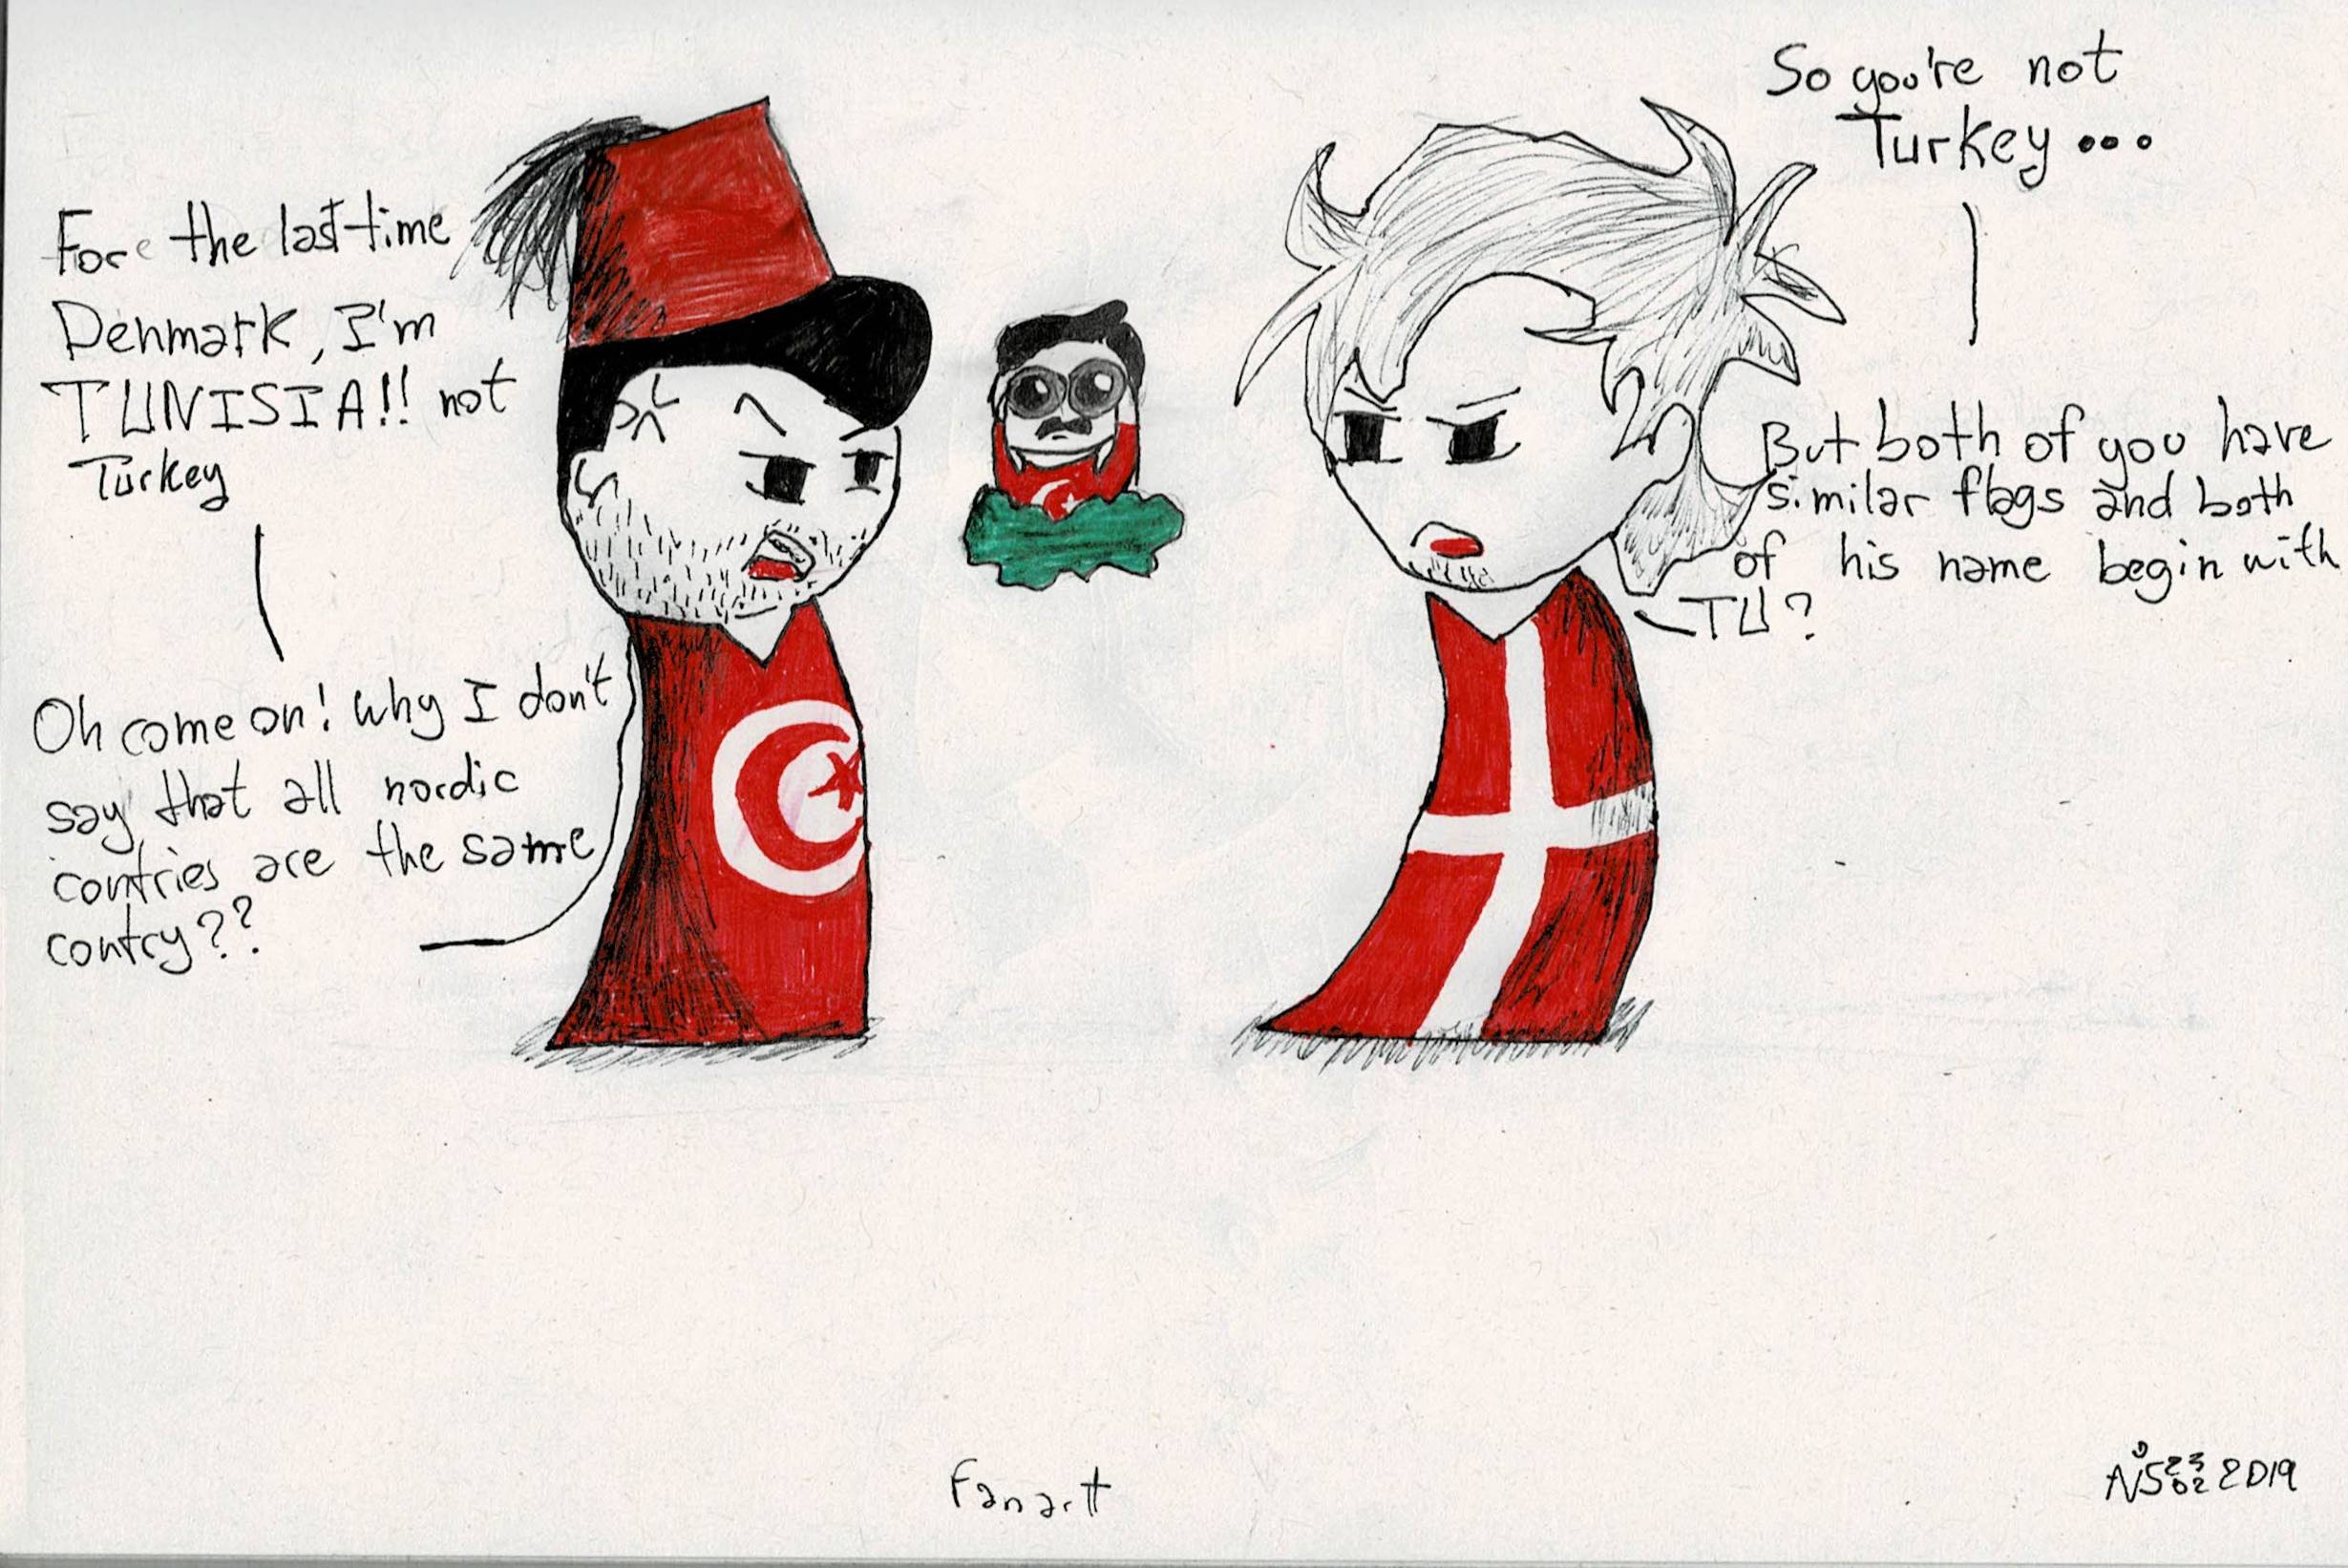 Tunisia get always mingled to Turkey satwcomic.com